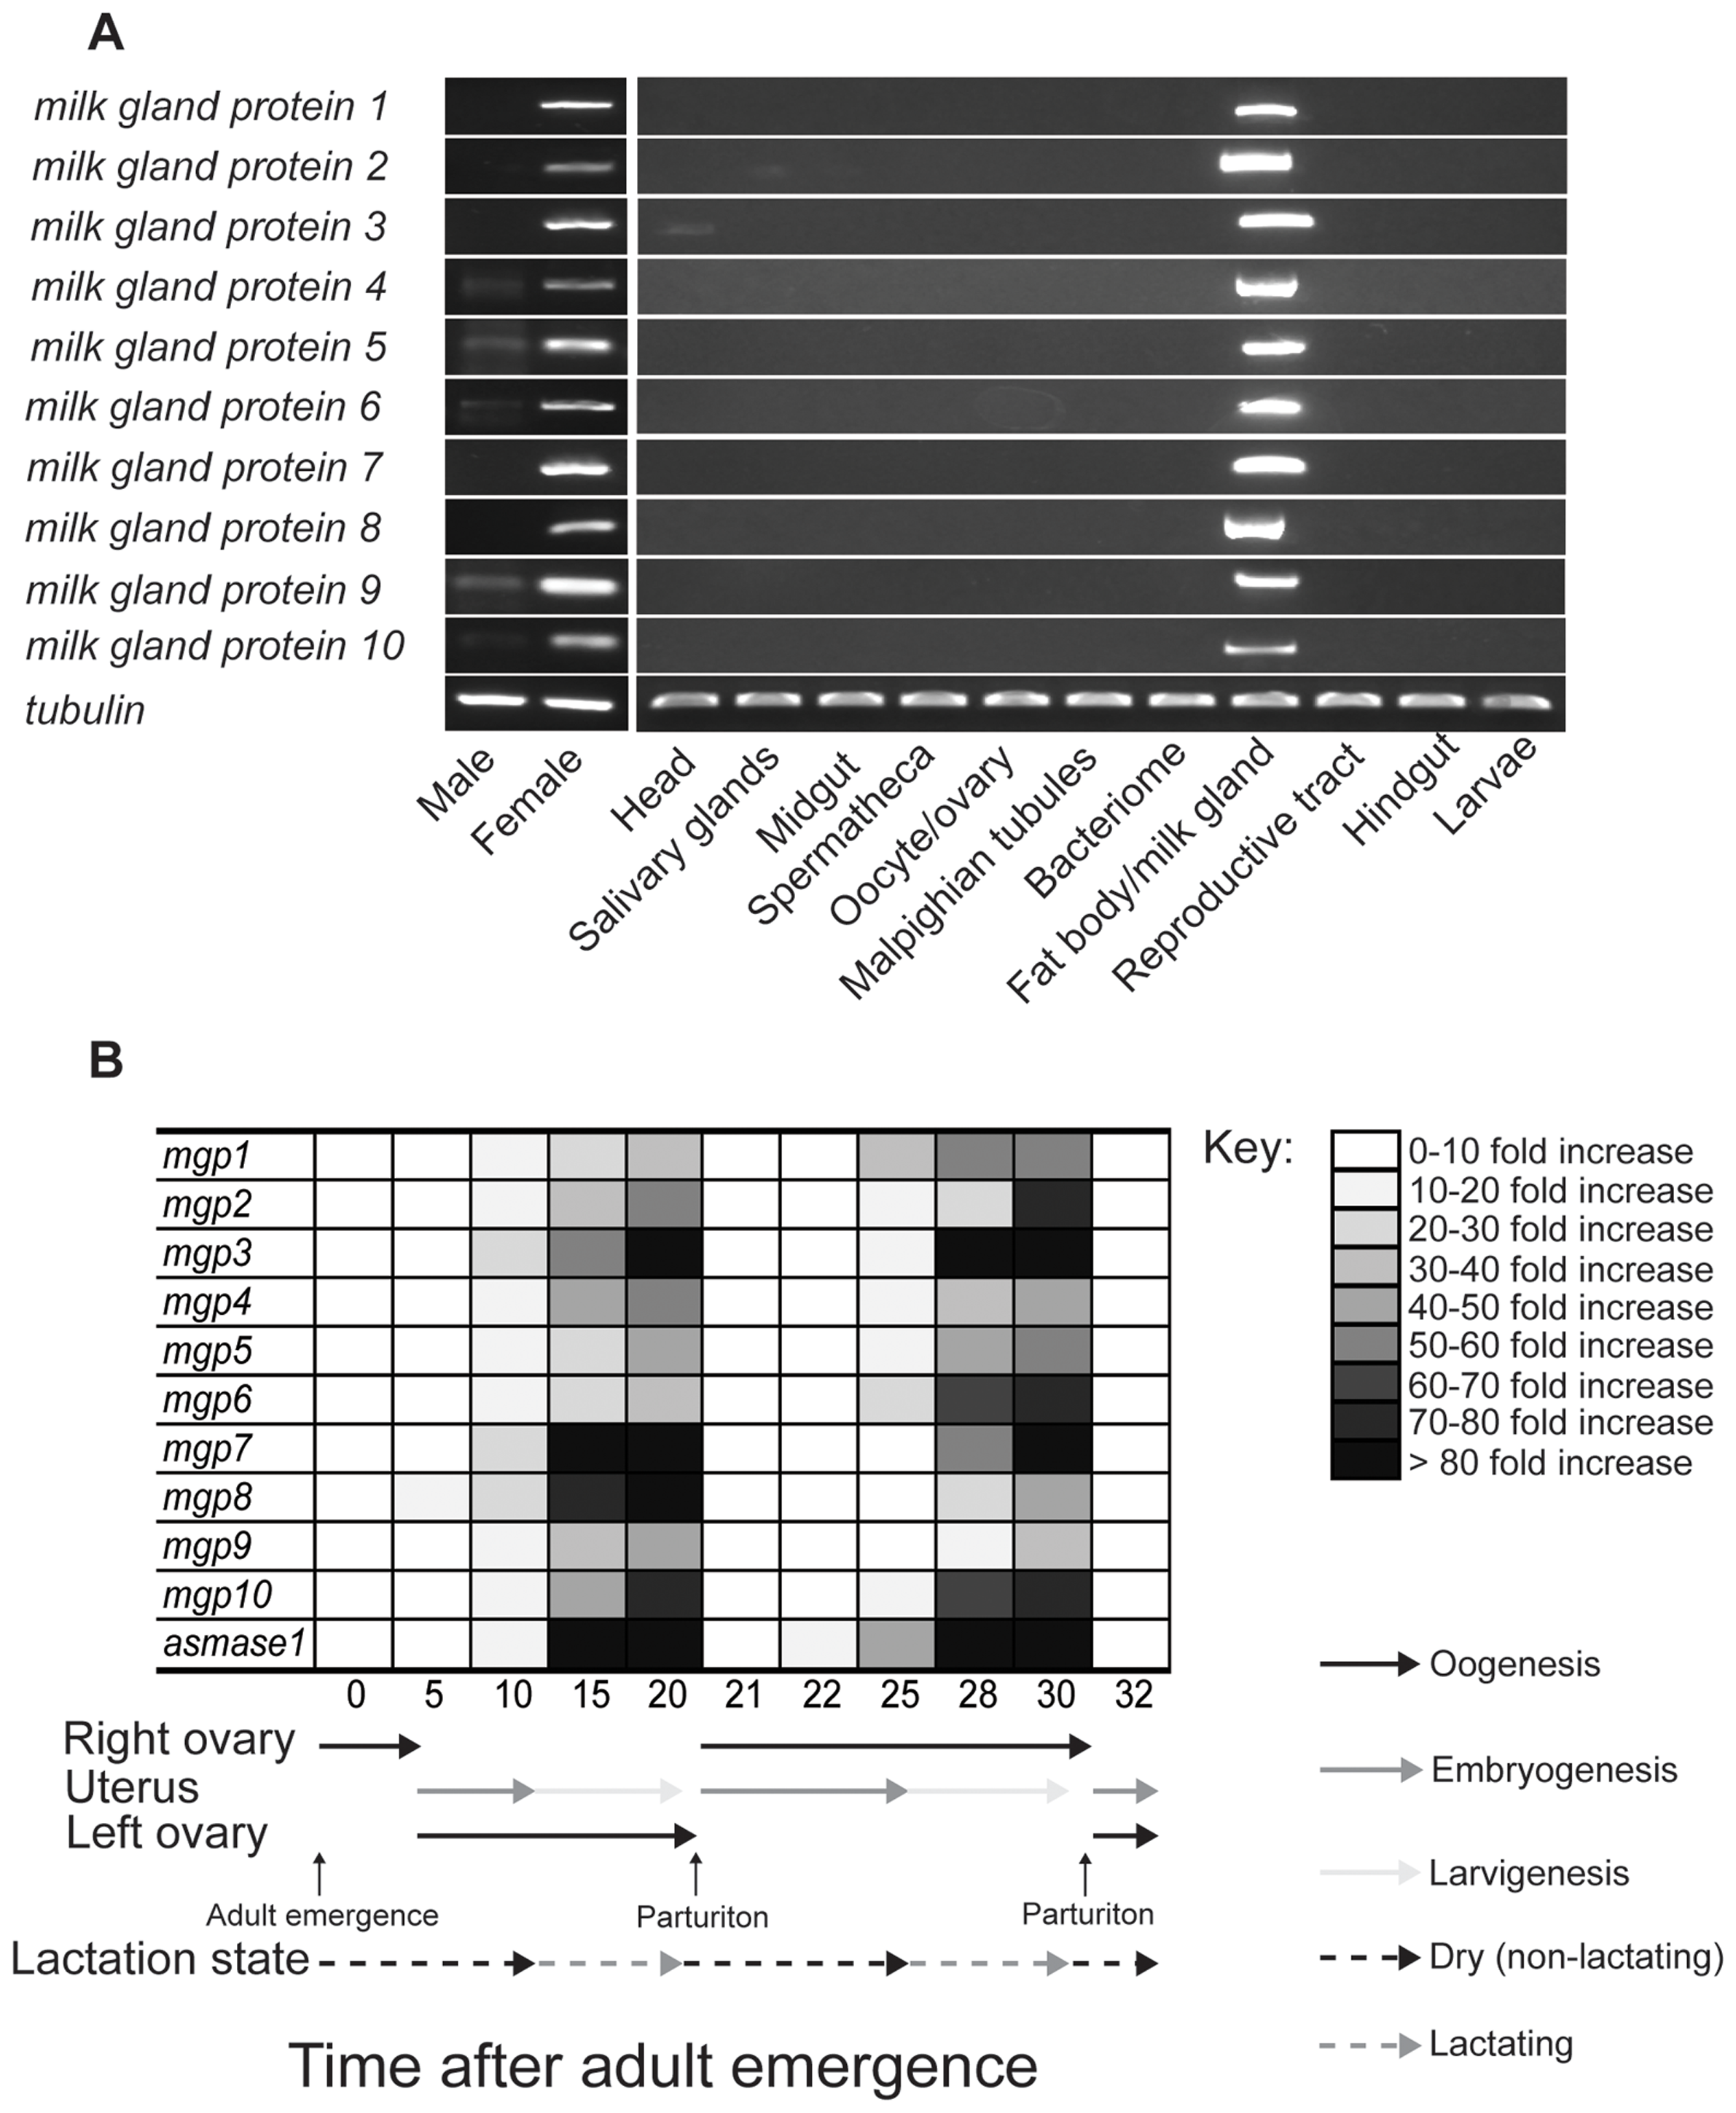 Temporal and spatial expression of milk gland protein genes.